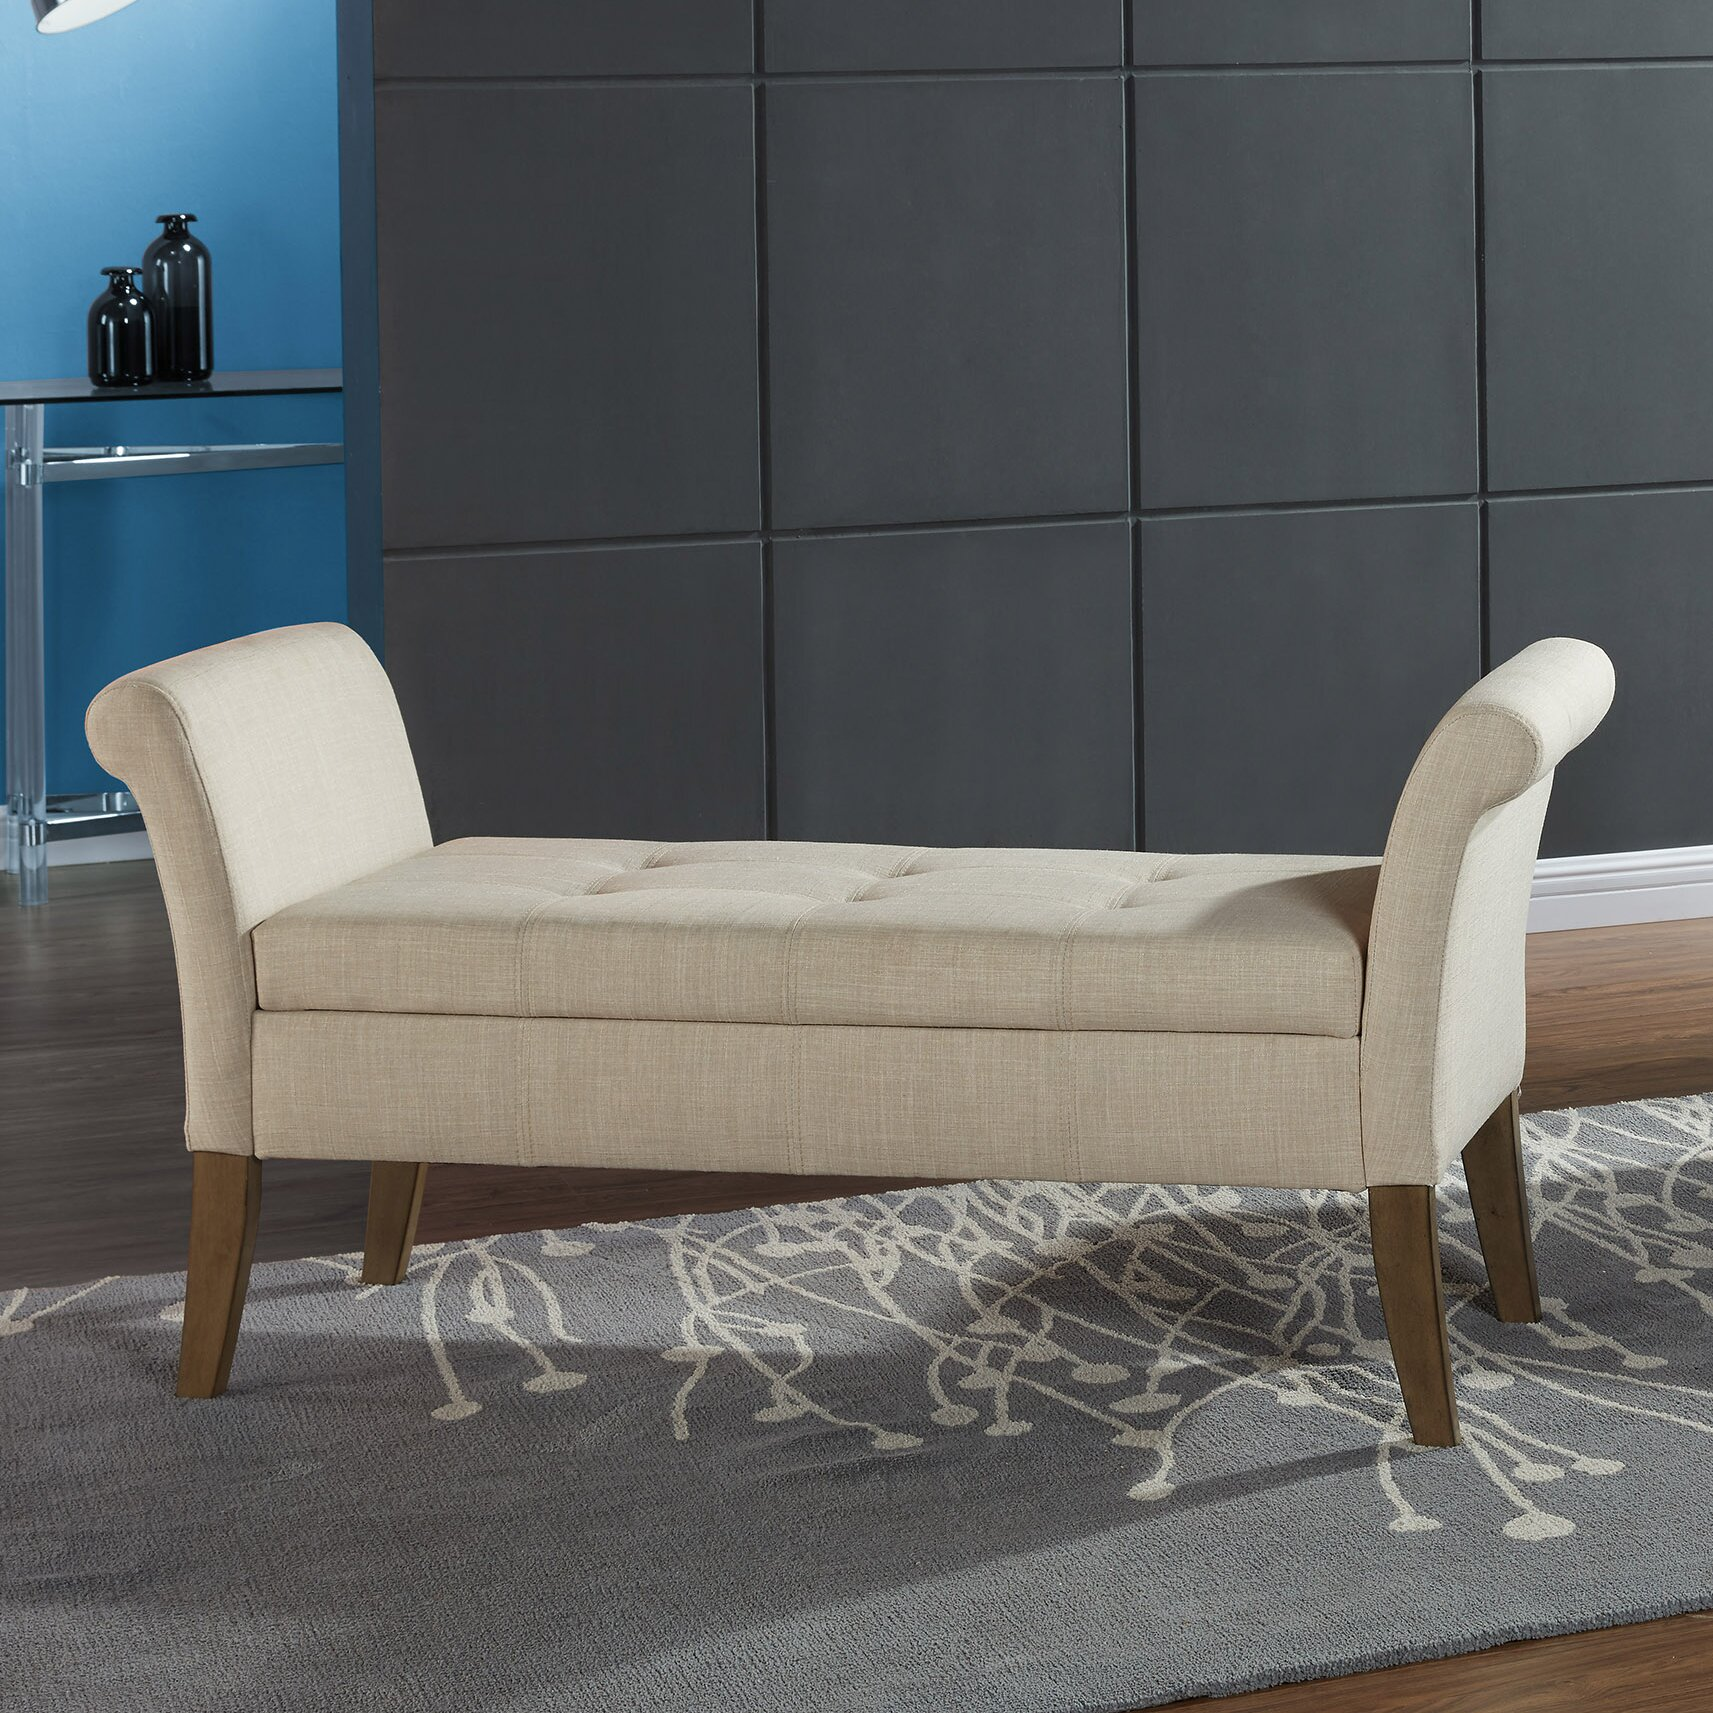 Varian Upholstered Storage Bedroom Bench Reviews: WorldWide HomeFurnishings Upholstered Storage Bedroom